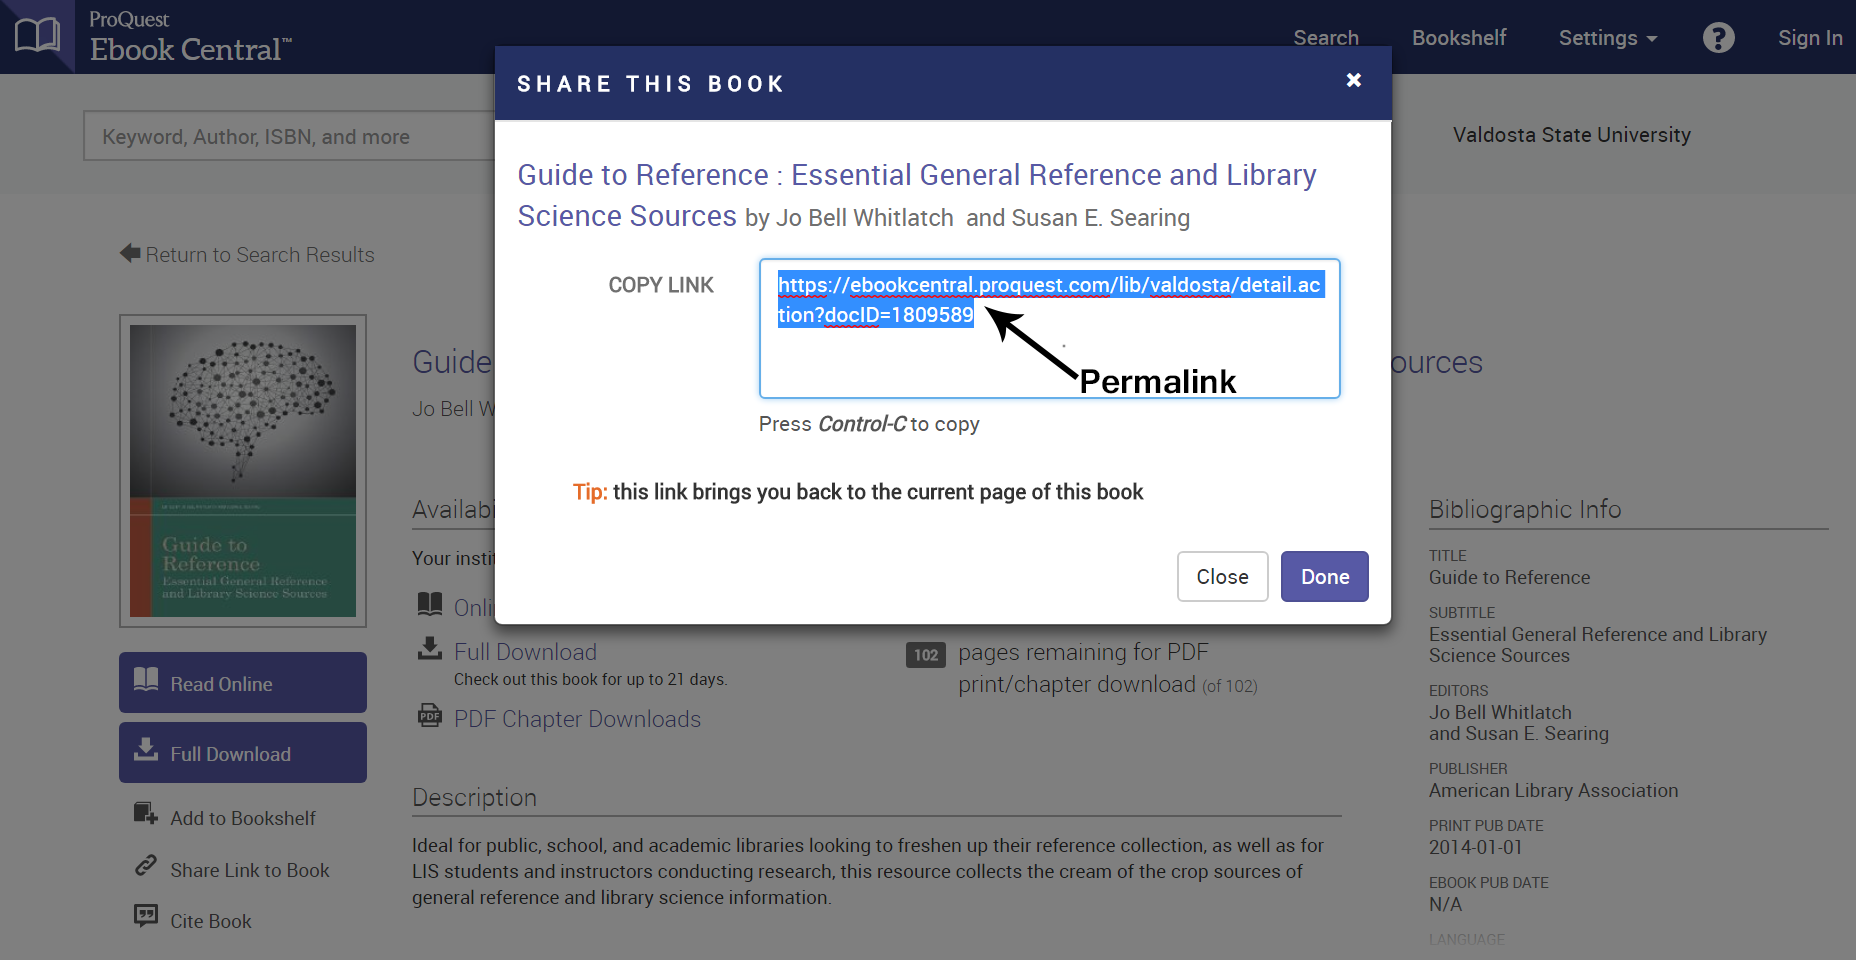 ProQuest Ebook Central platform - Share This Book window with URL within it. This would be the permalink.